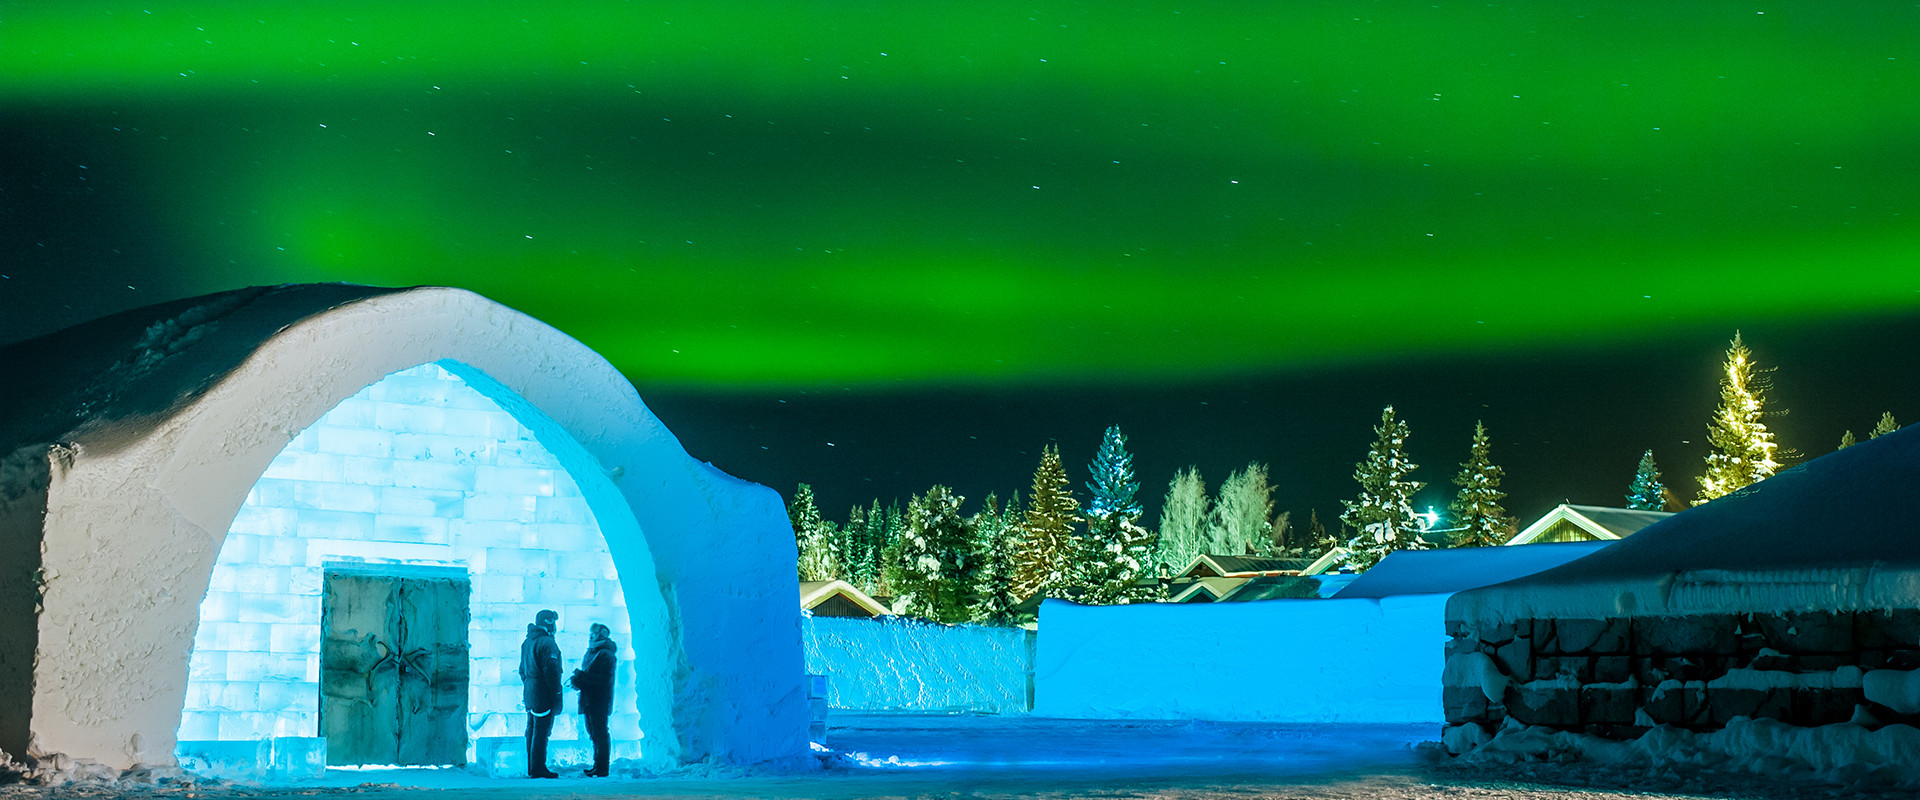 Northern Lights over the Icehotel, Sweden, Yukkasjärvi